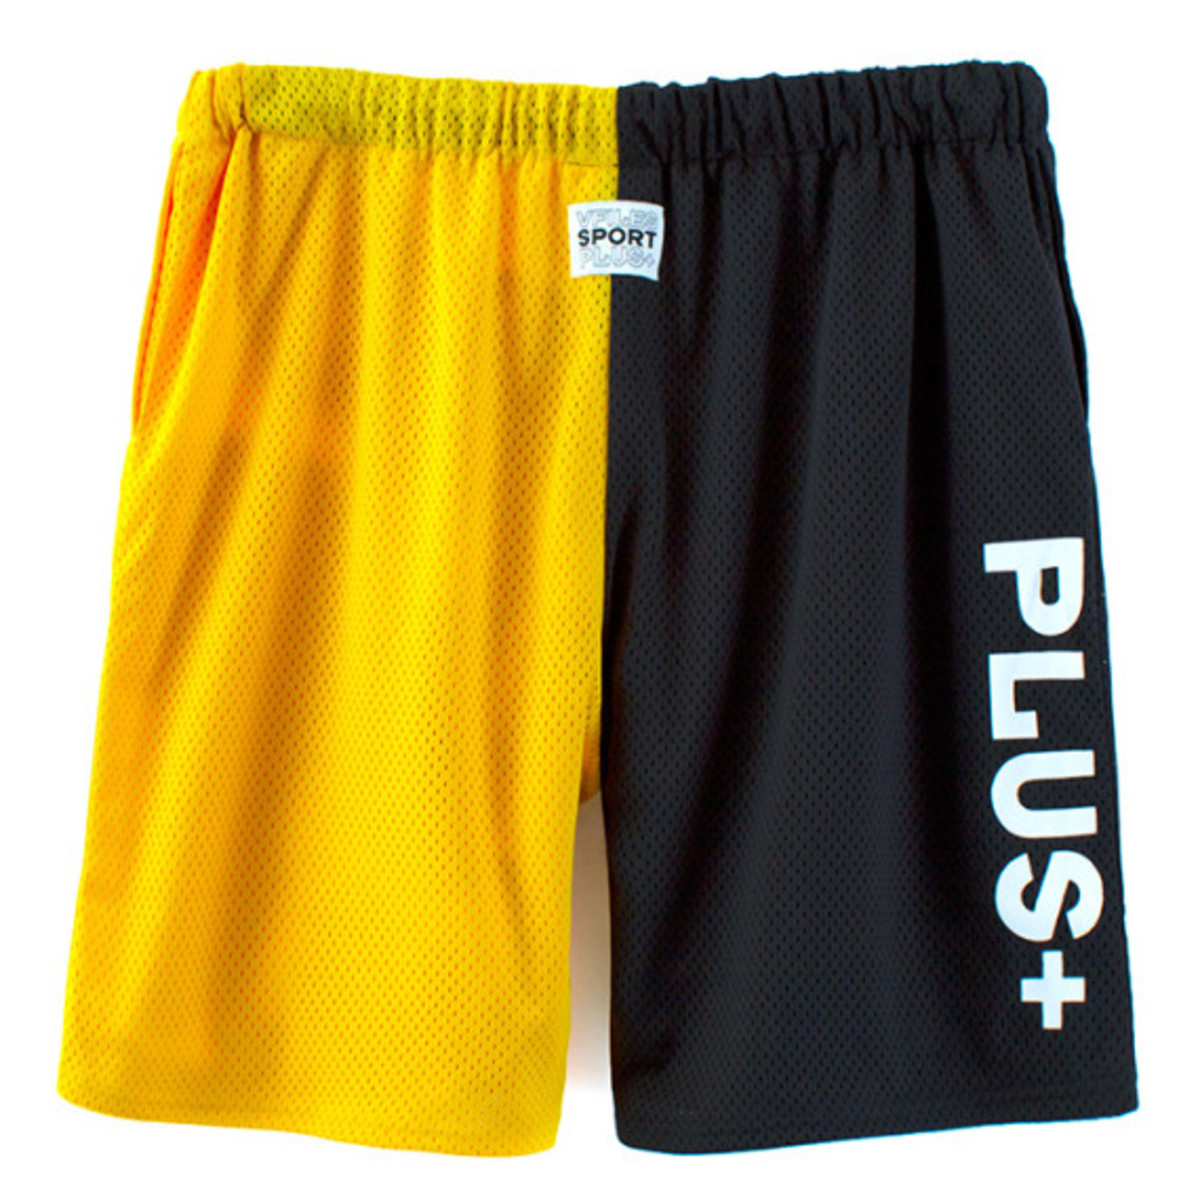 vfiles-sport-plus-debut-collection-15